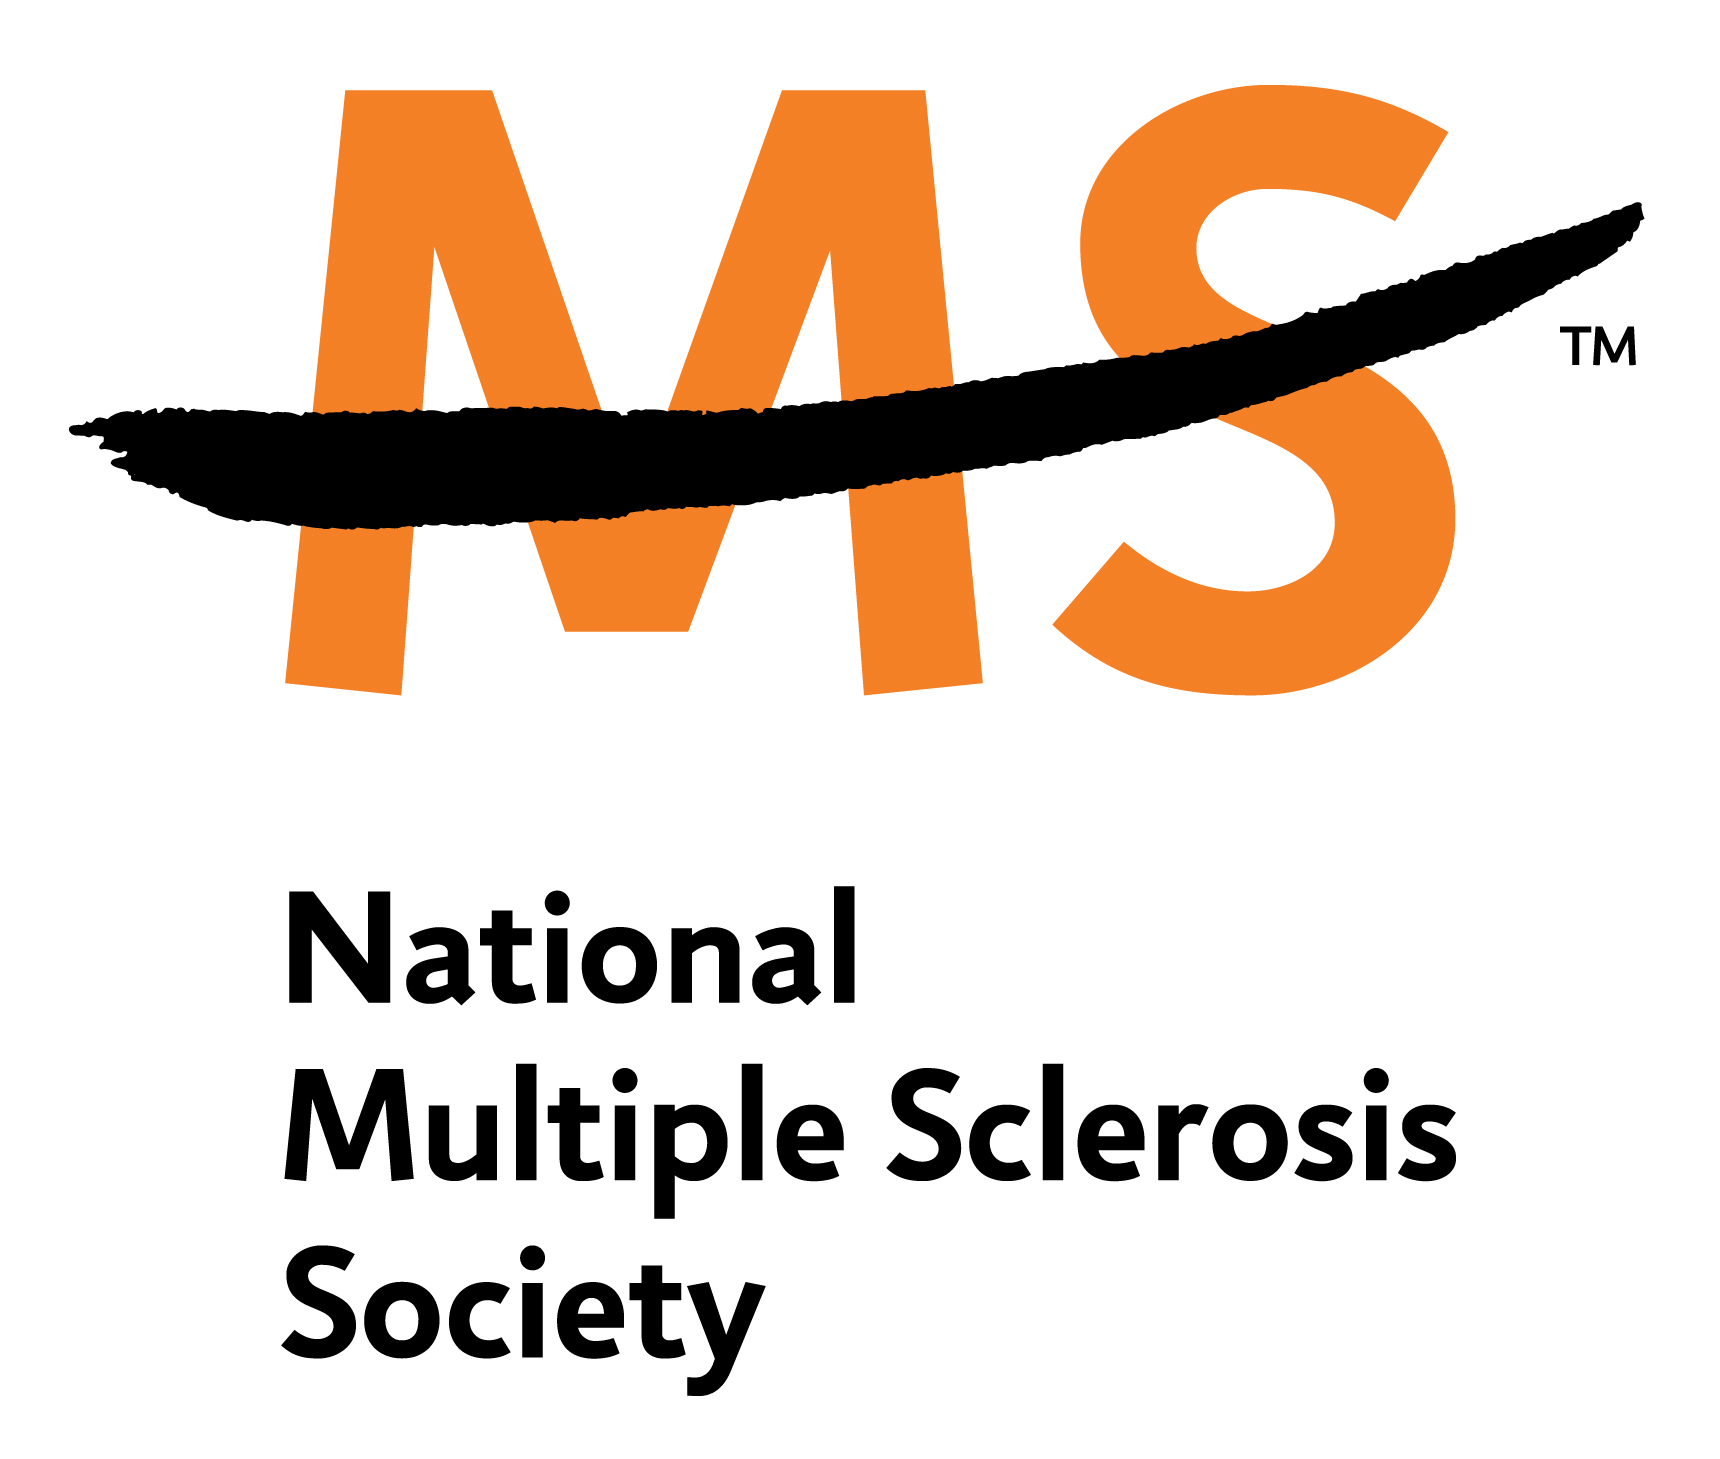 Free image/jpeg, Resolution: 1720x1459, File size: 392Kb, isolated Multiple Sclerosis Society logo